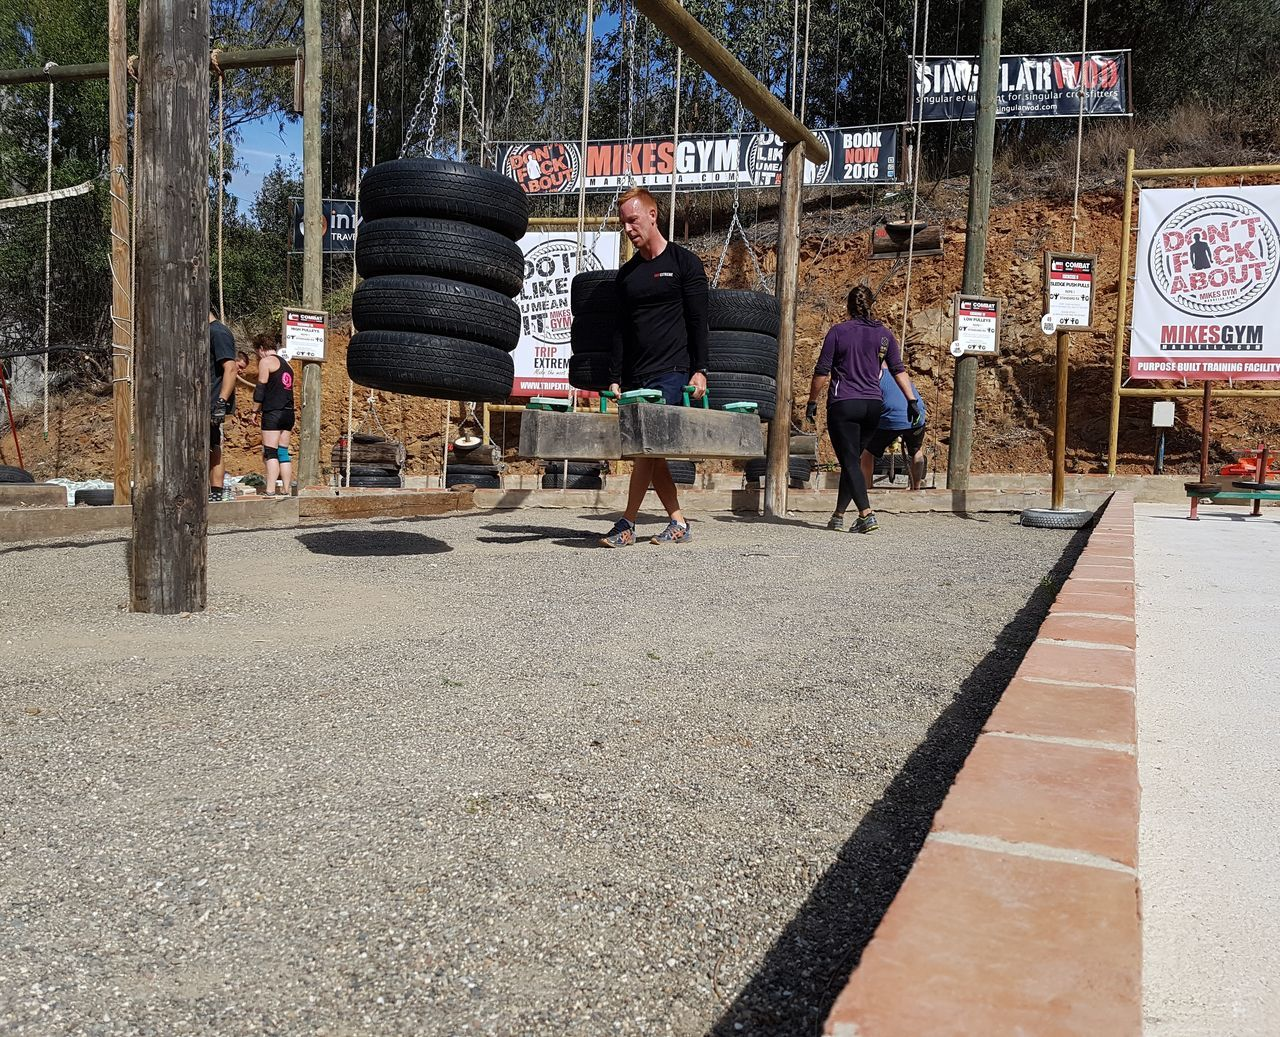 www.tripextreme.es MikesGym MikesGymMarbella Ocr OCRBootcamp Strongman Obstaclerun Obstaclecourserace Obstacle Course Obstaclecourseracing Farmerswalk